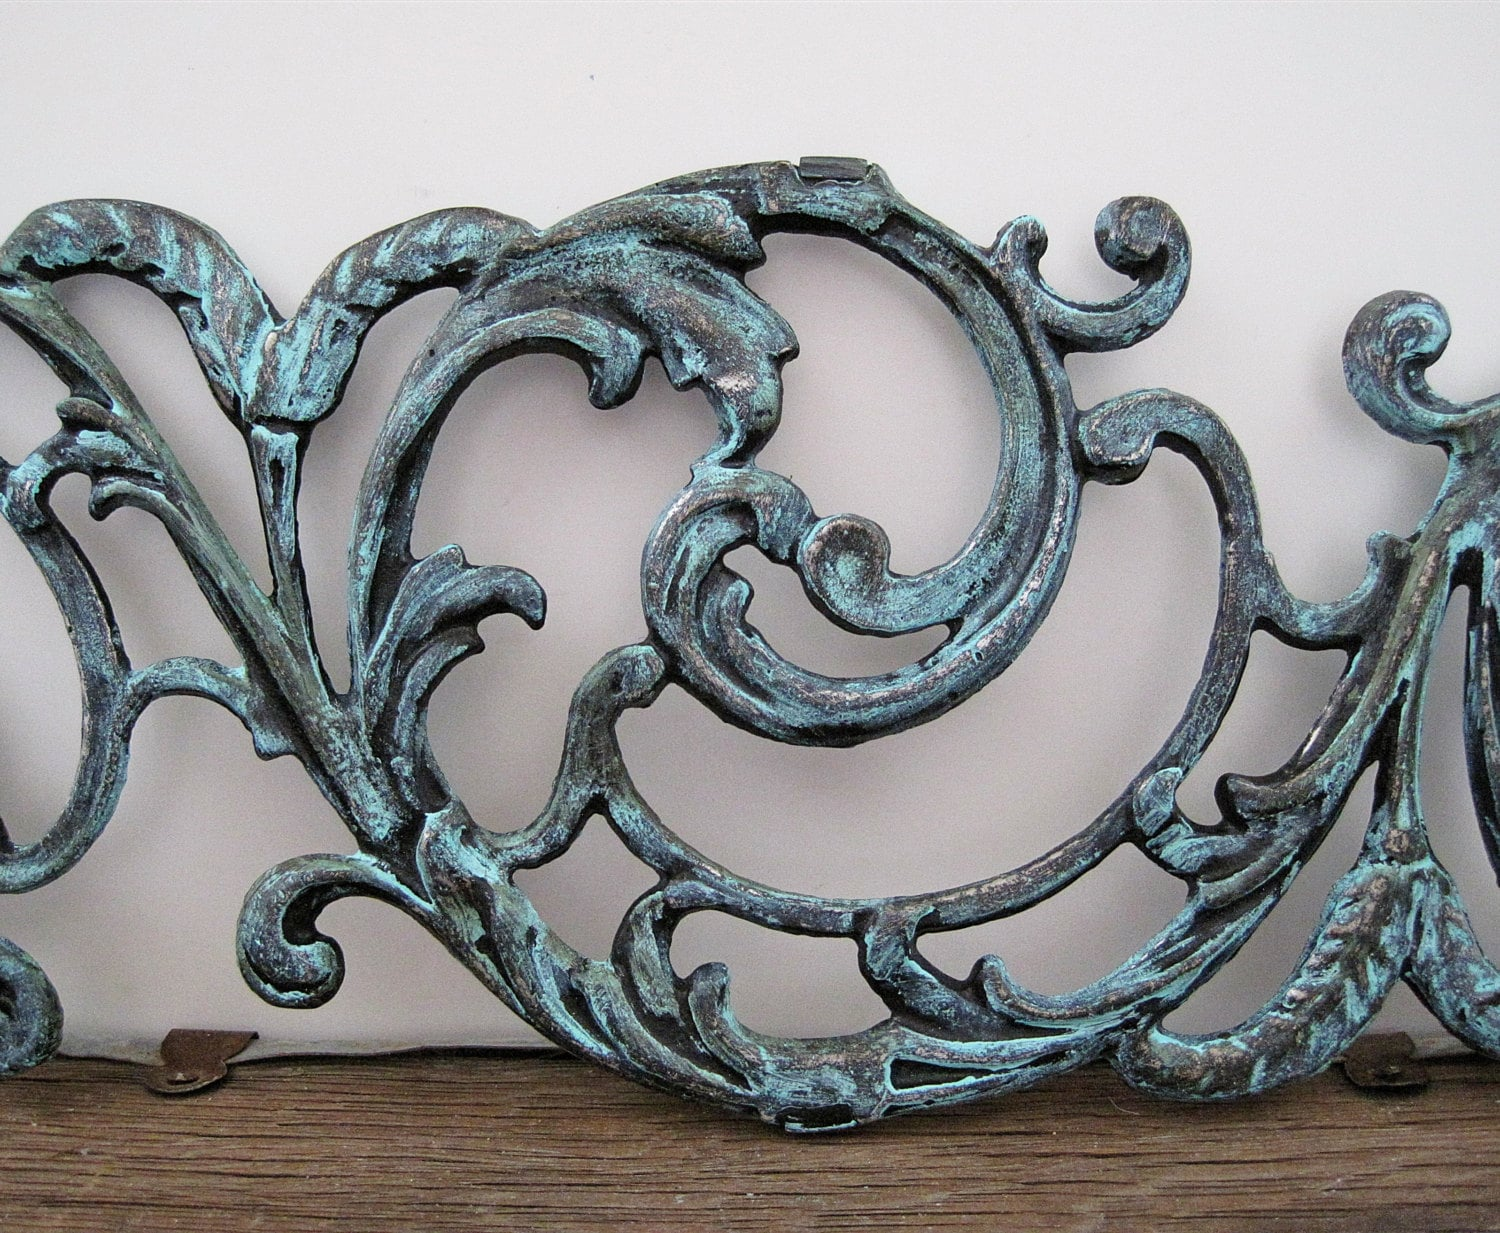 Metal Wall Art Filigree Gate Architectural Salvage Garden Home